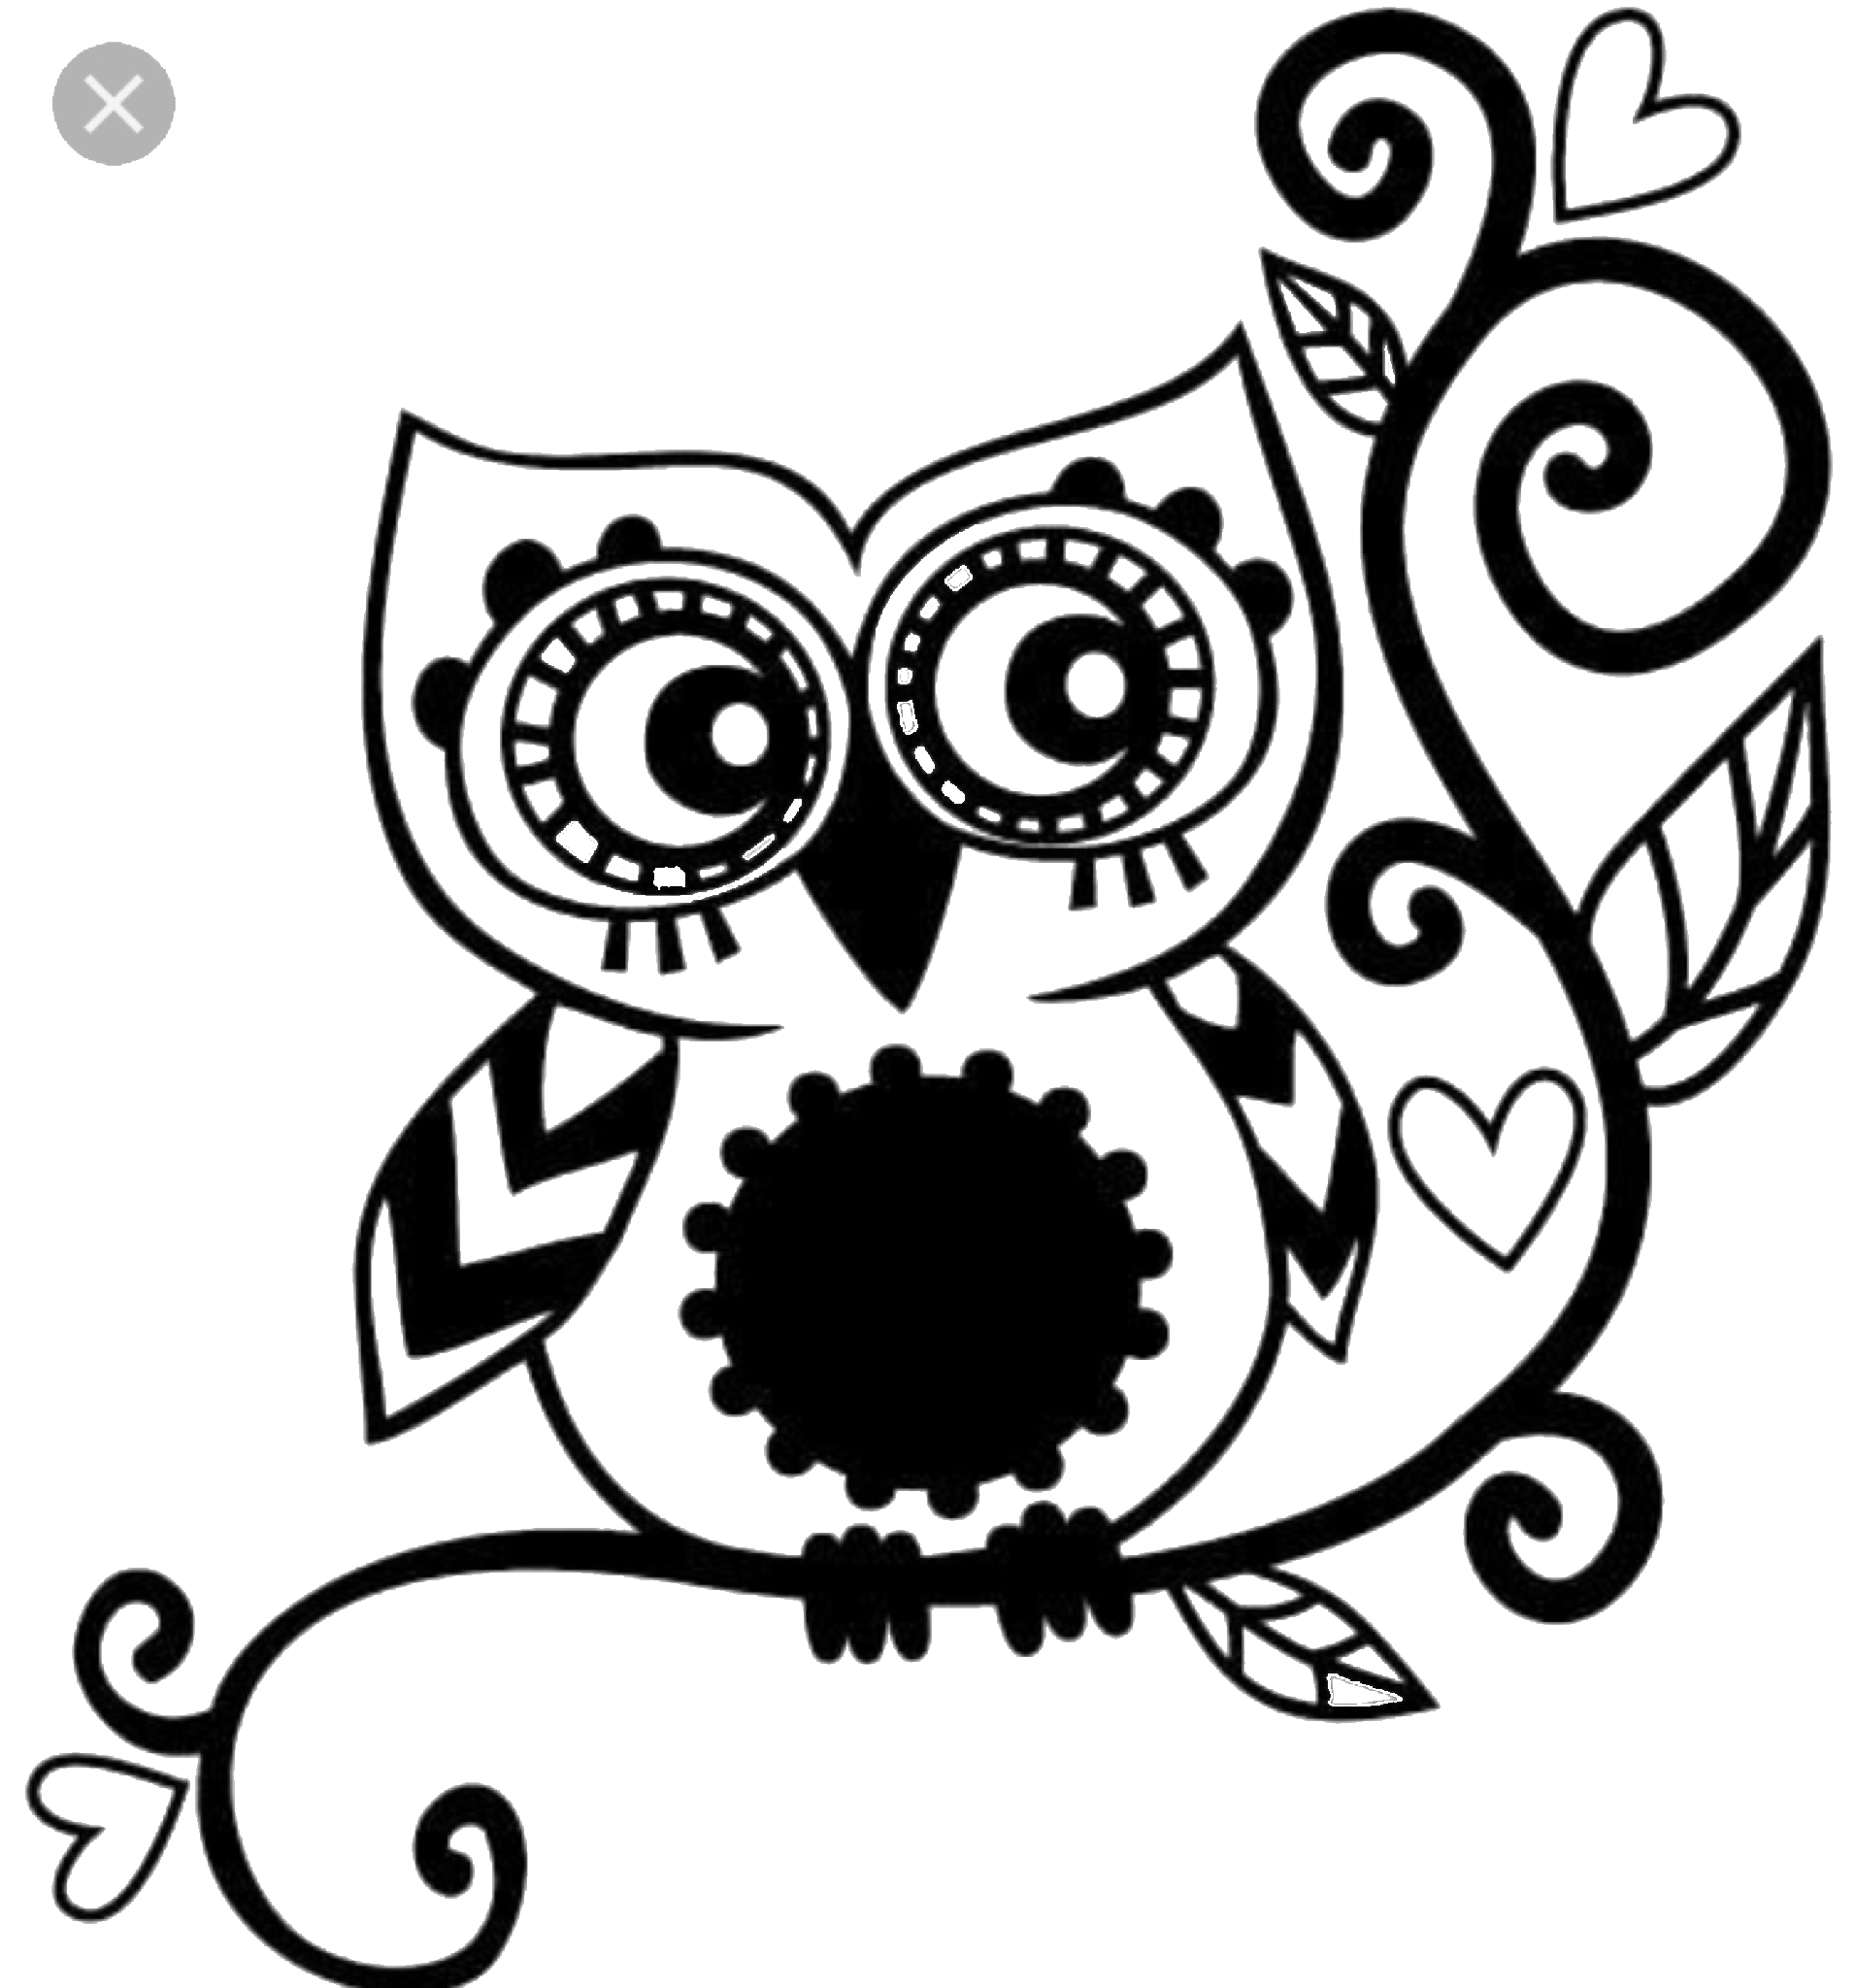 Owl beach cat clipart png freeuse library Owl stencil | Blusas | Pinterest | Cricut, Owl stencil and Stenciling png freeuse library